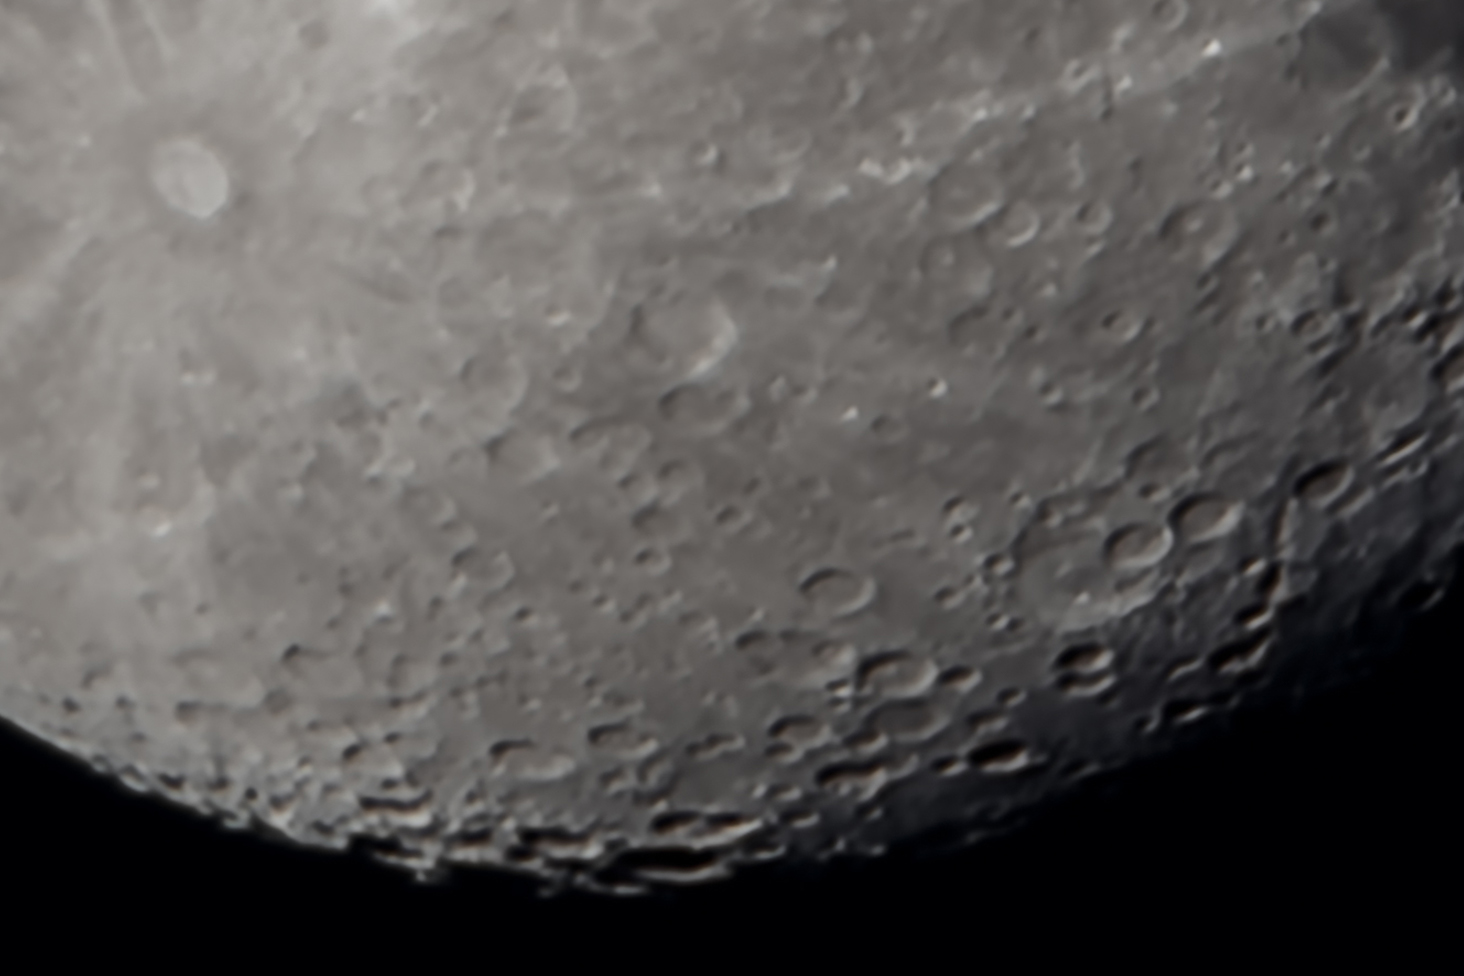 1:1 Close-up of Moon - 40 image stack in Photoshop using Smart Object Mean mode